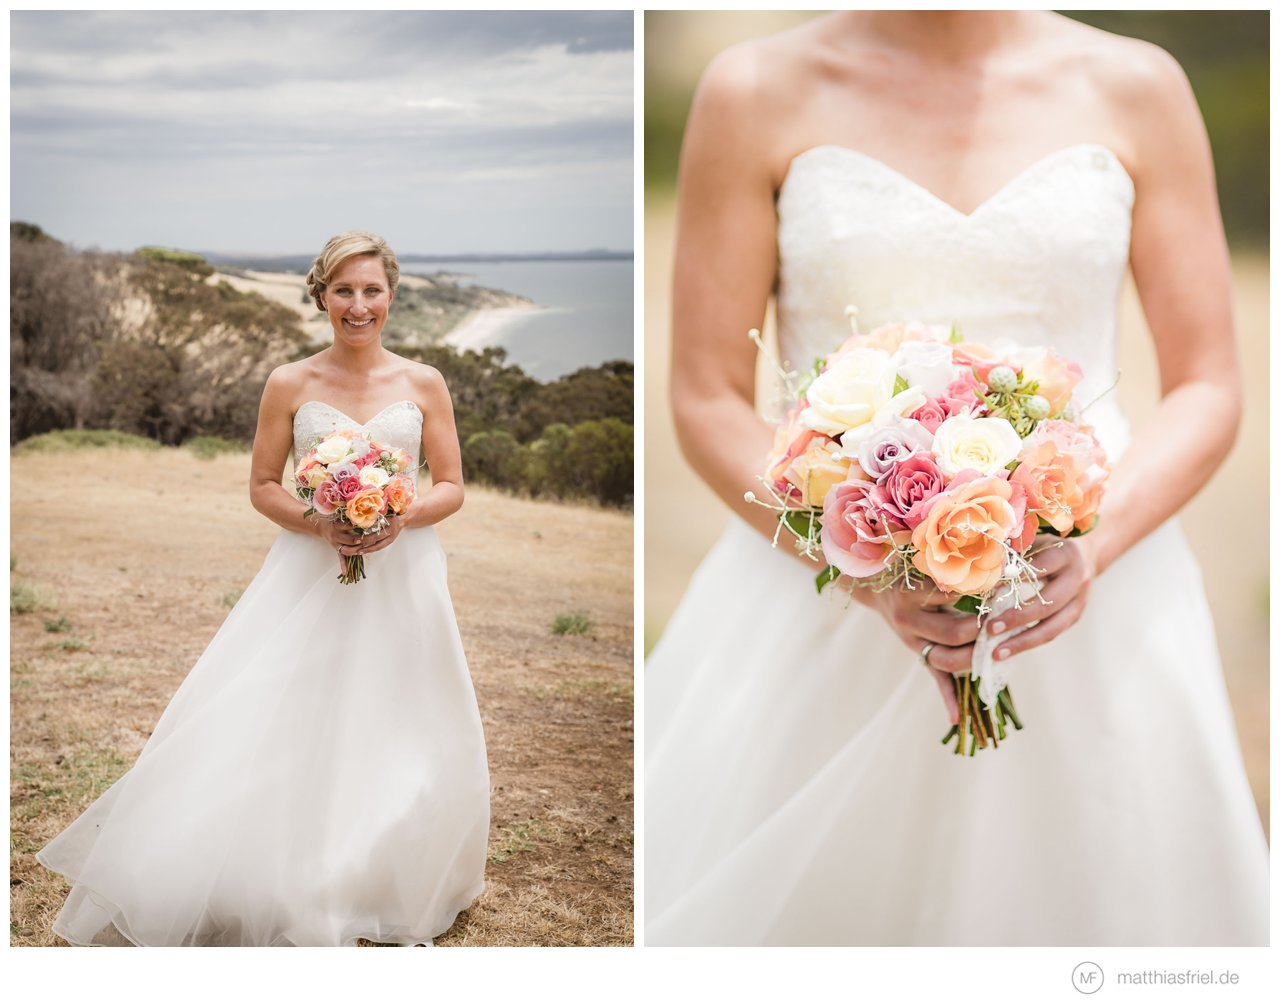 Wedding-Kangaroo-Island-Australia-Jane-Simon-046